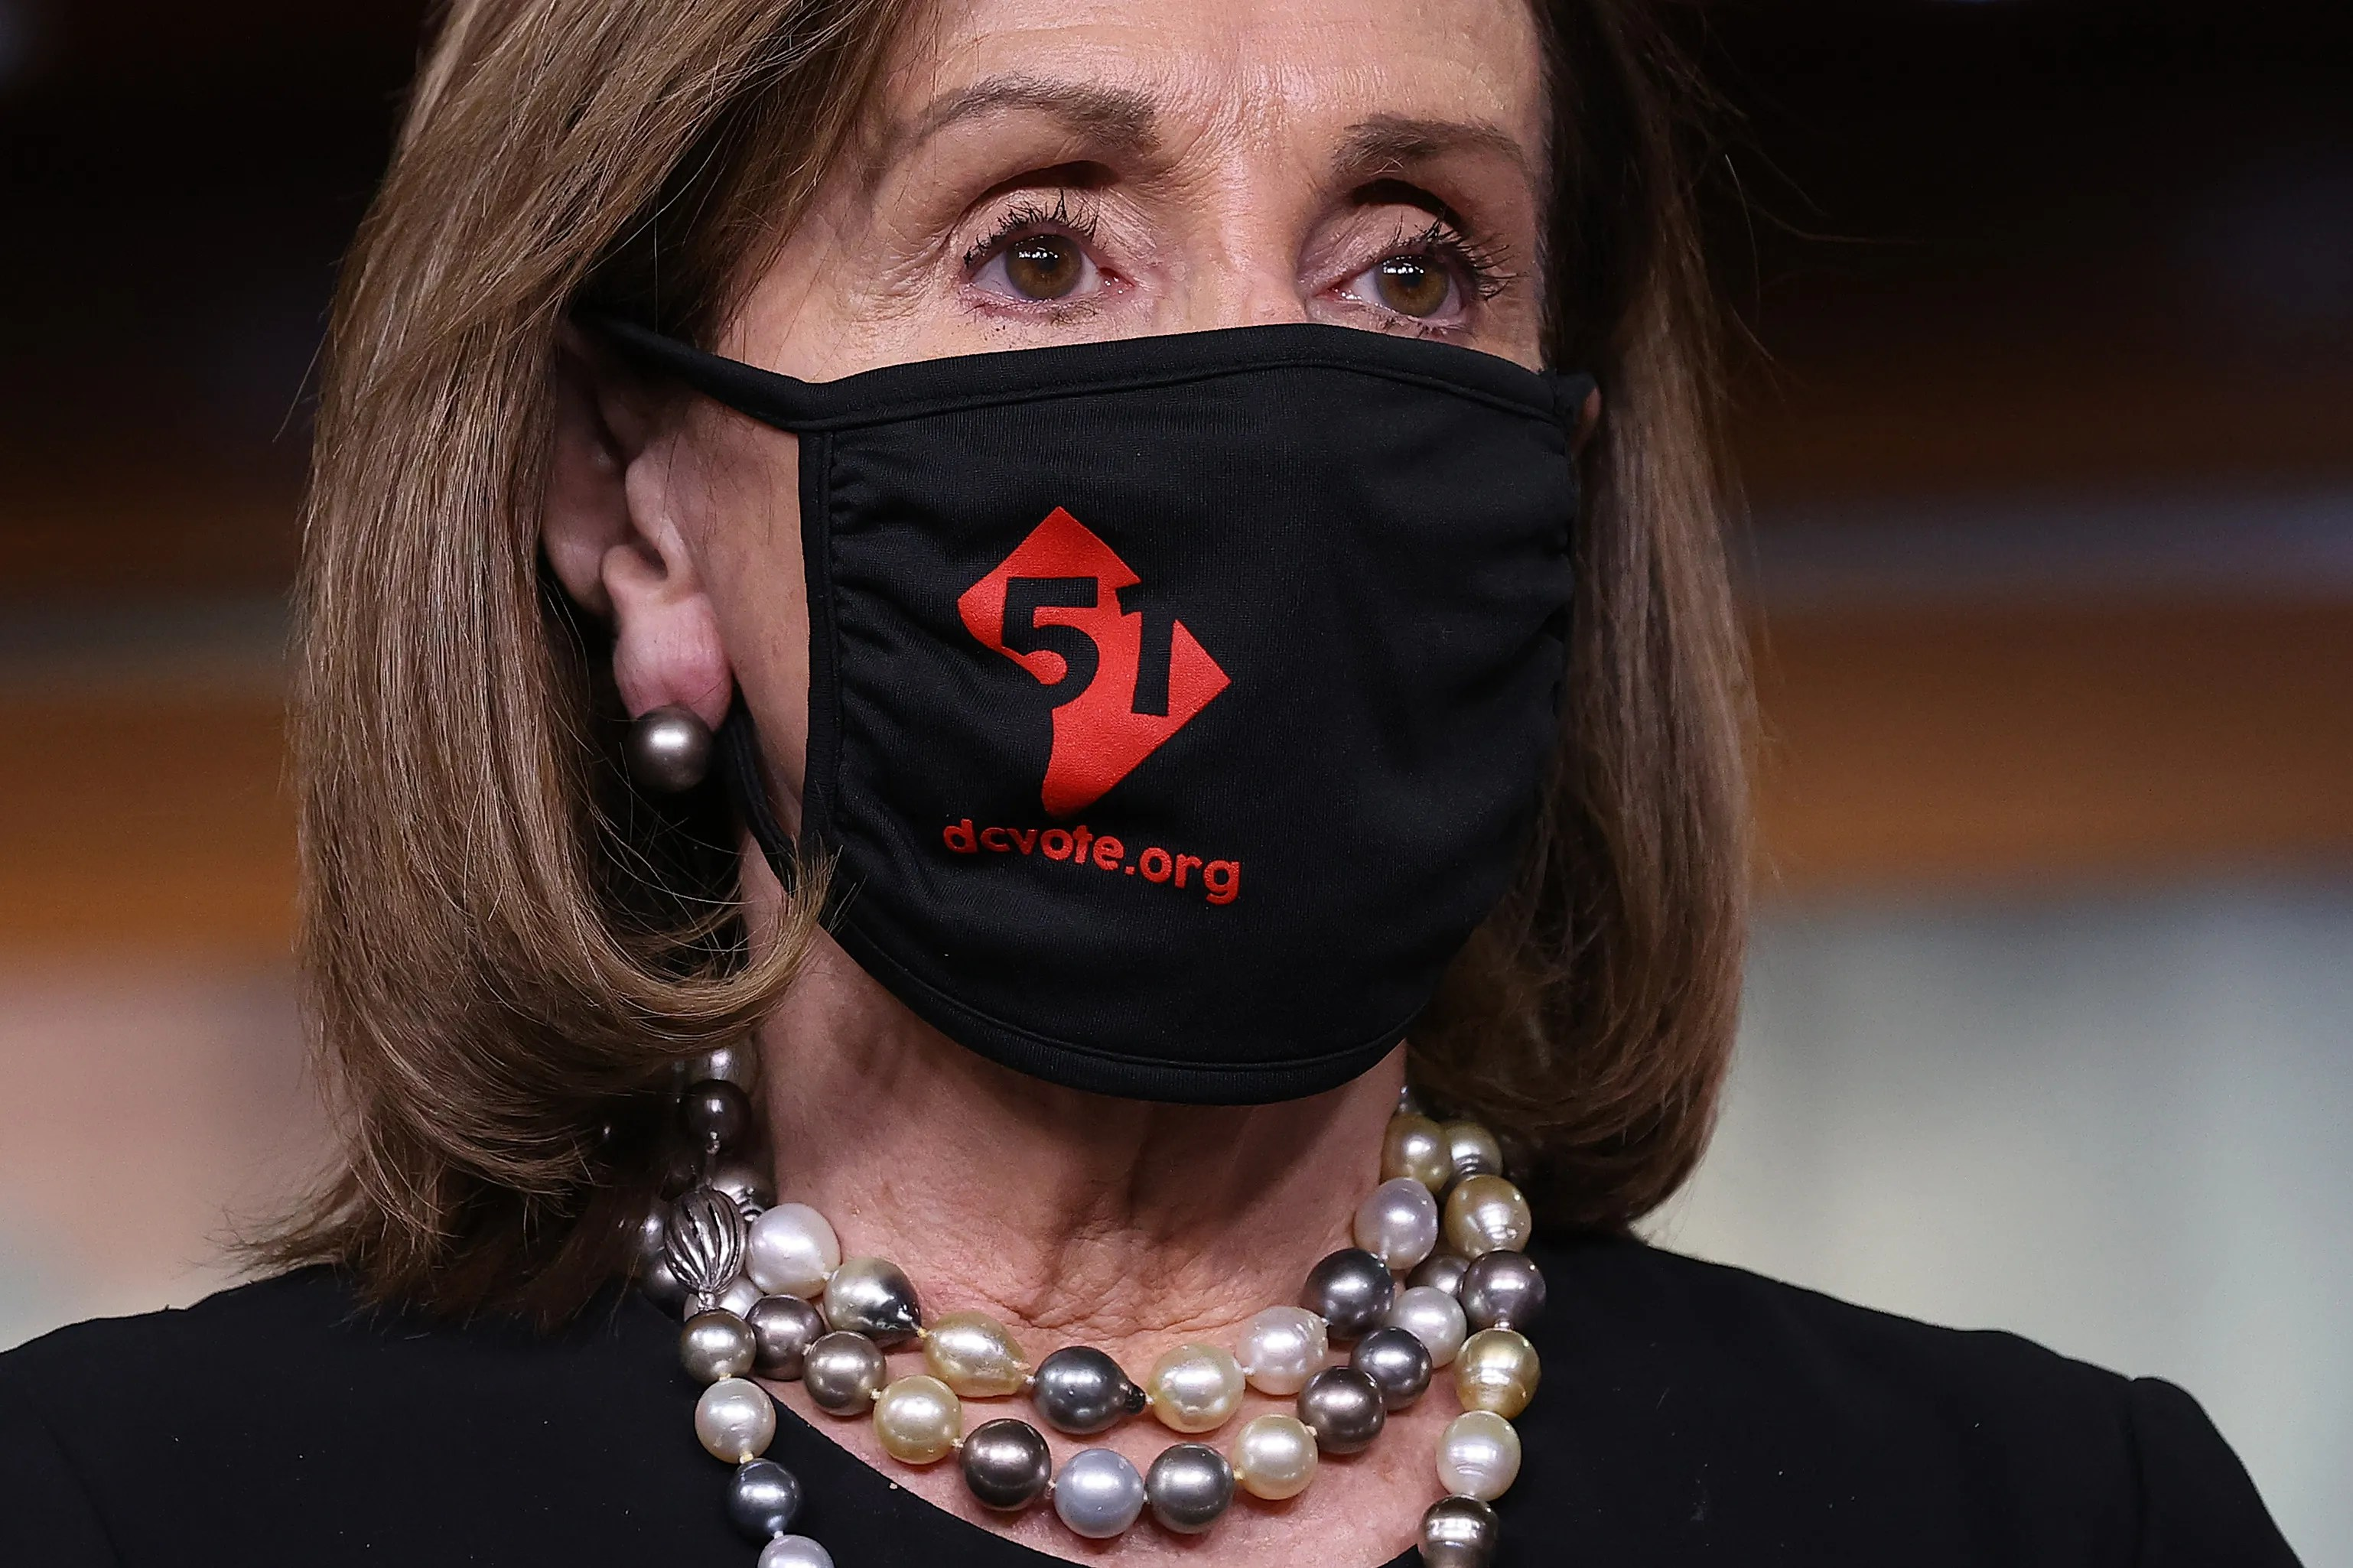 """WASHINGTON, DC - APRIL 21: Speaker of the House Nancy Pelosi (D-CA) wears a `` 51 '' face mask during a press conference on the state of the District of Columbia at the U.S. Capitol on April 21, 2021 in Washington, DC.  The House of Representatives will vote on HR51 on Thursday, """"Washington, DC Admission Act,"""" which would grant statehood to residents of the District of Columbia.  (Photo by Chip Somodevilla / Getty Images) ORG XMIT: 775646980 ORIG FILE ID: 1313691561"""